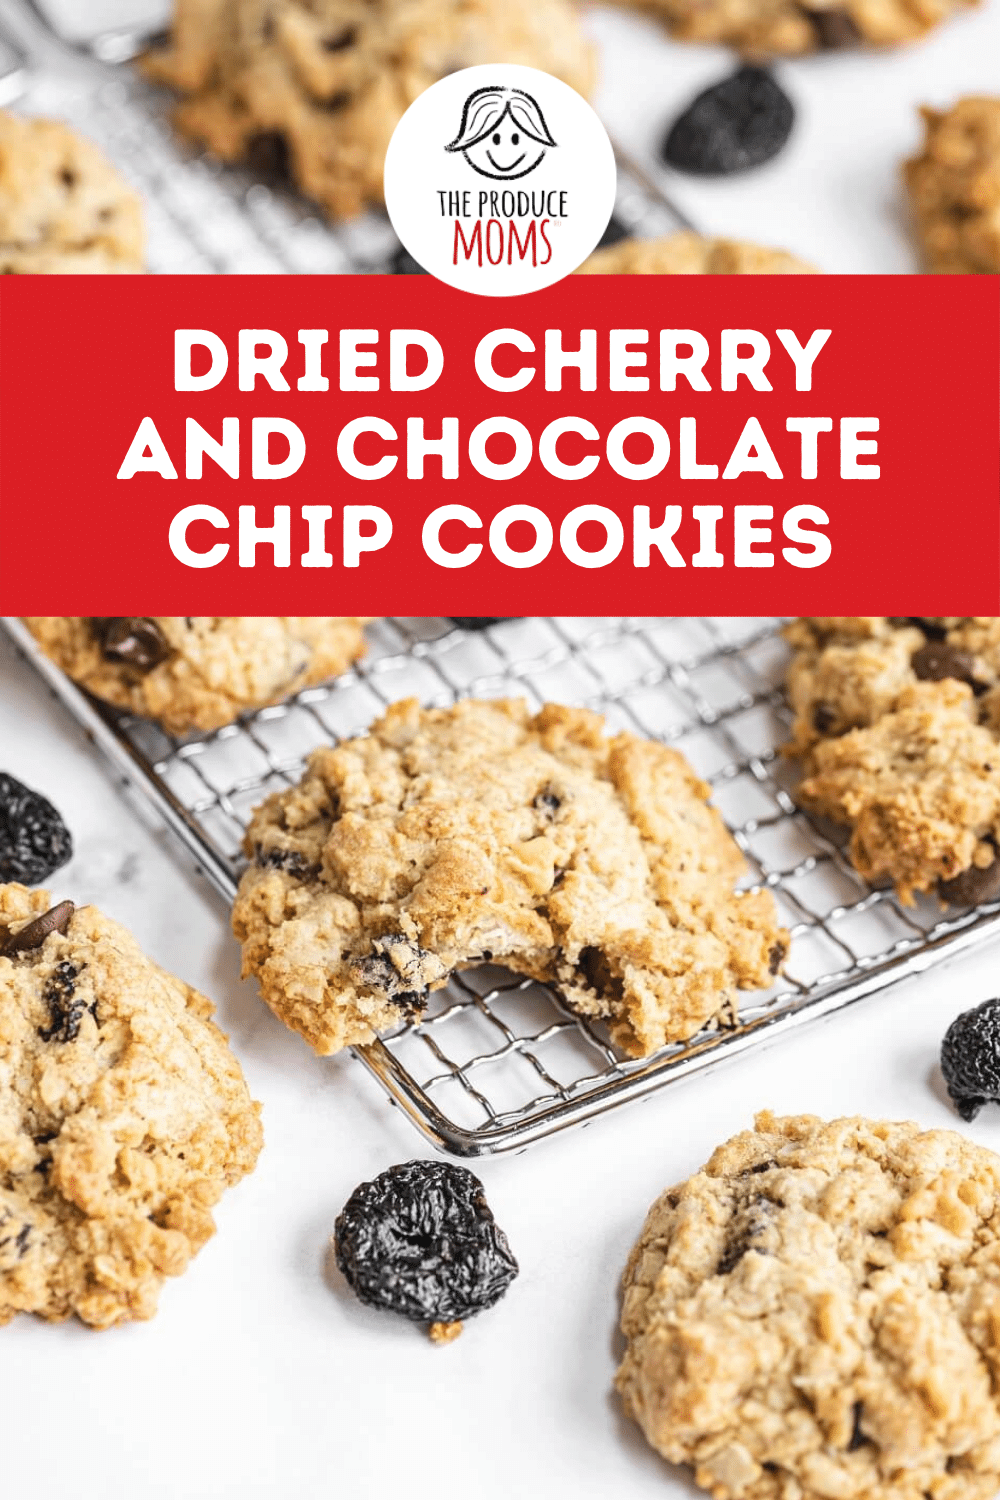 Dried Cherry and Chocolate Chip Cookies